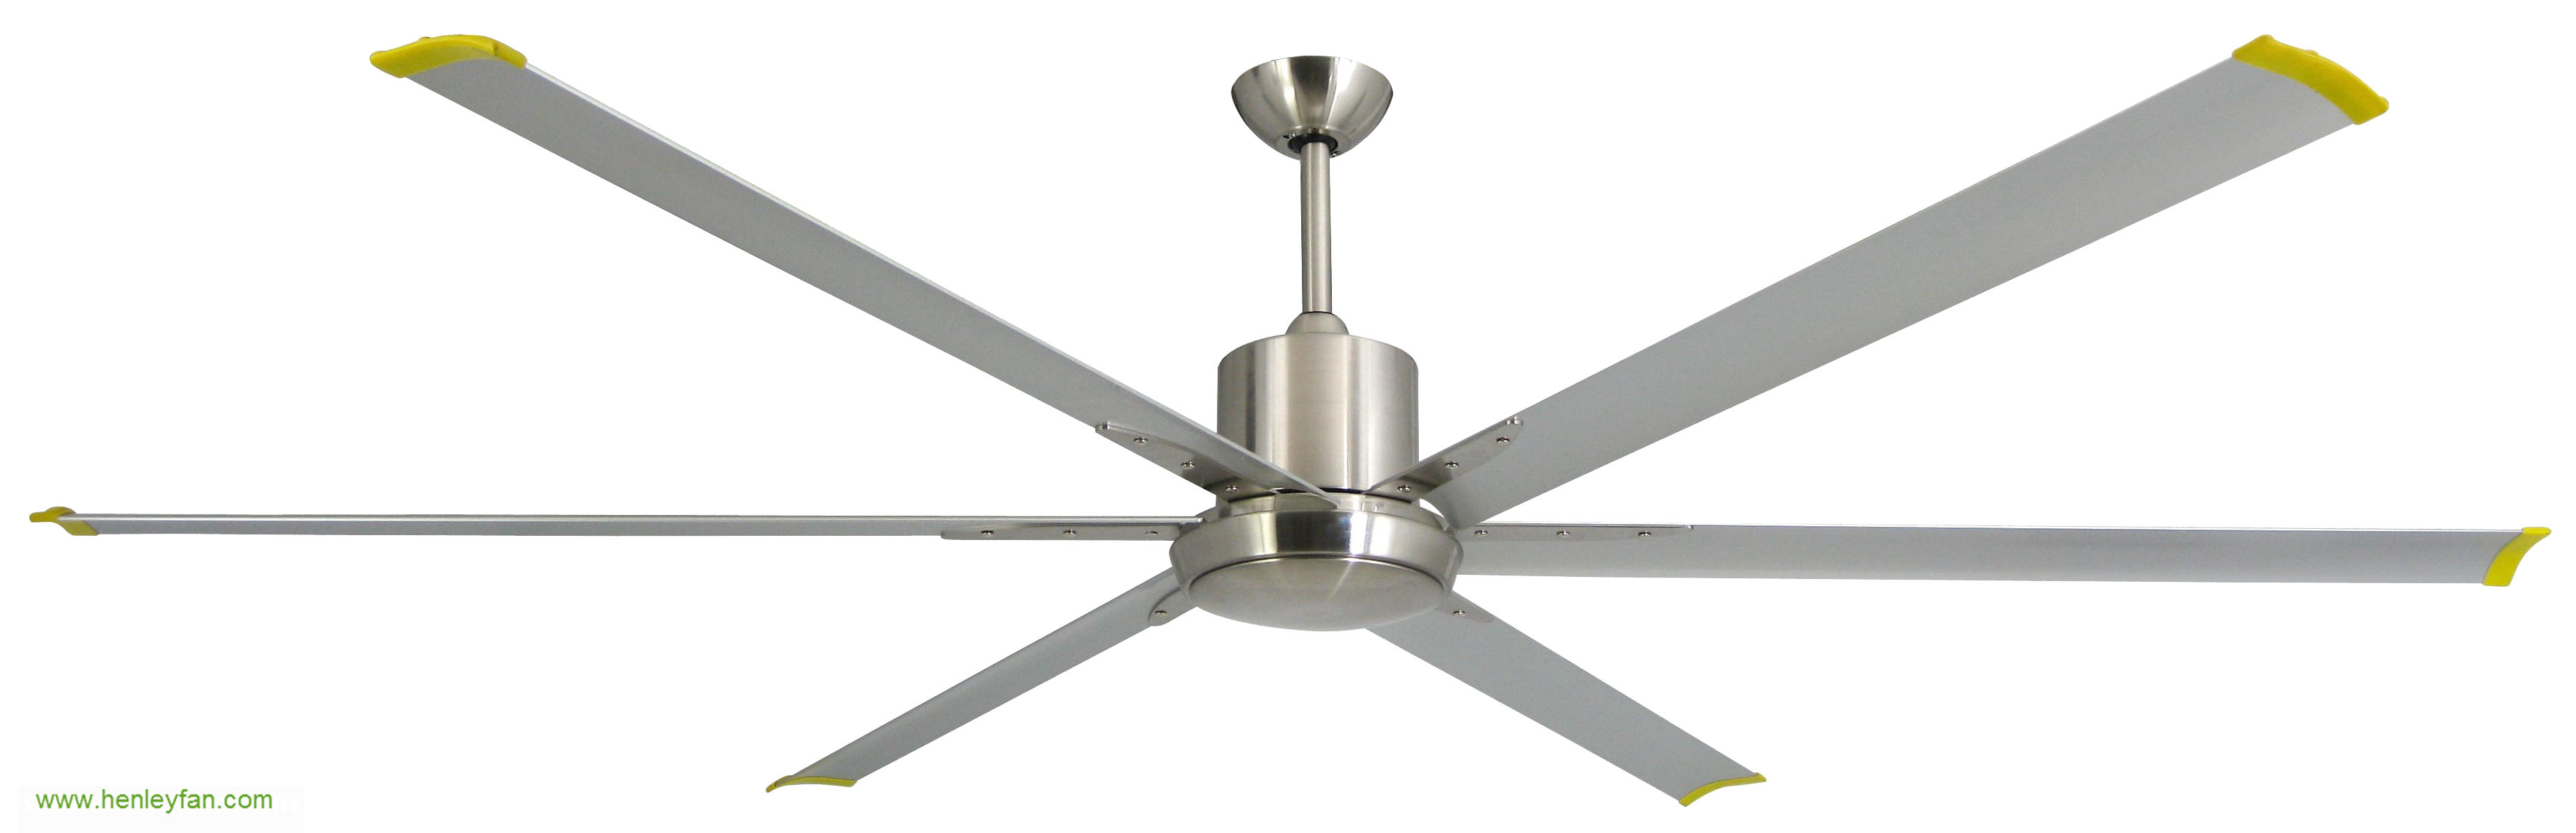 Mrken helicopter 6he84 very large low energy dc ceiling - Pictures of ceiling fans ...